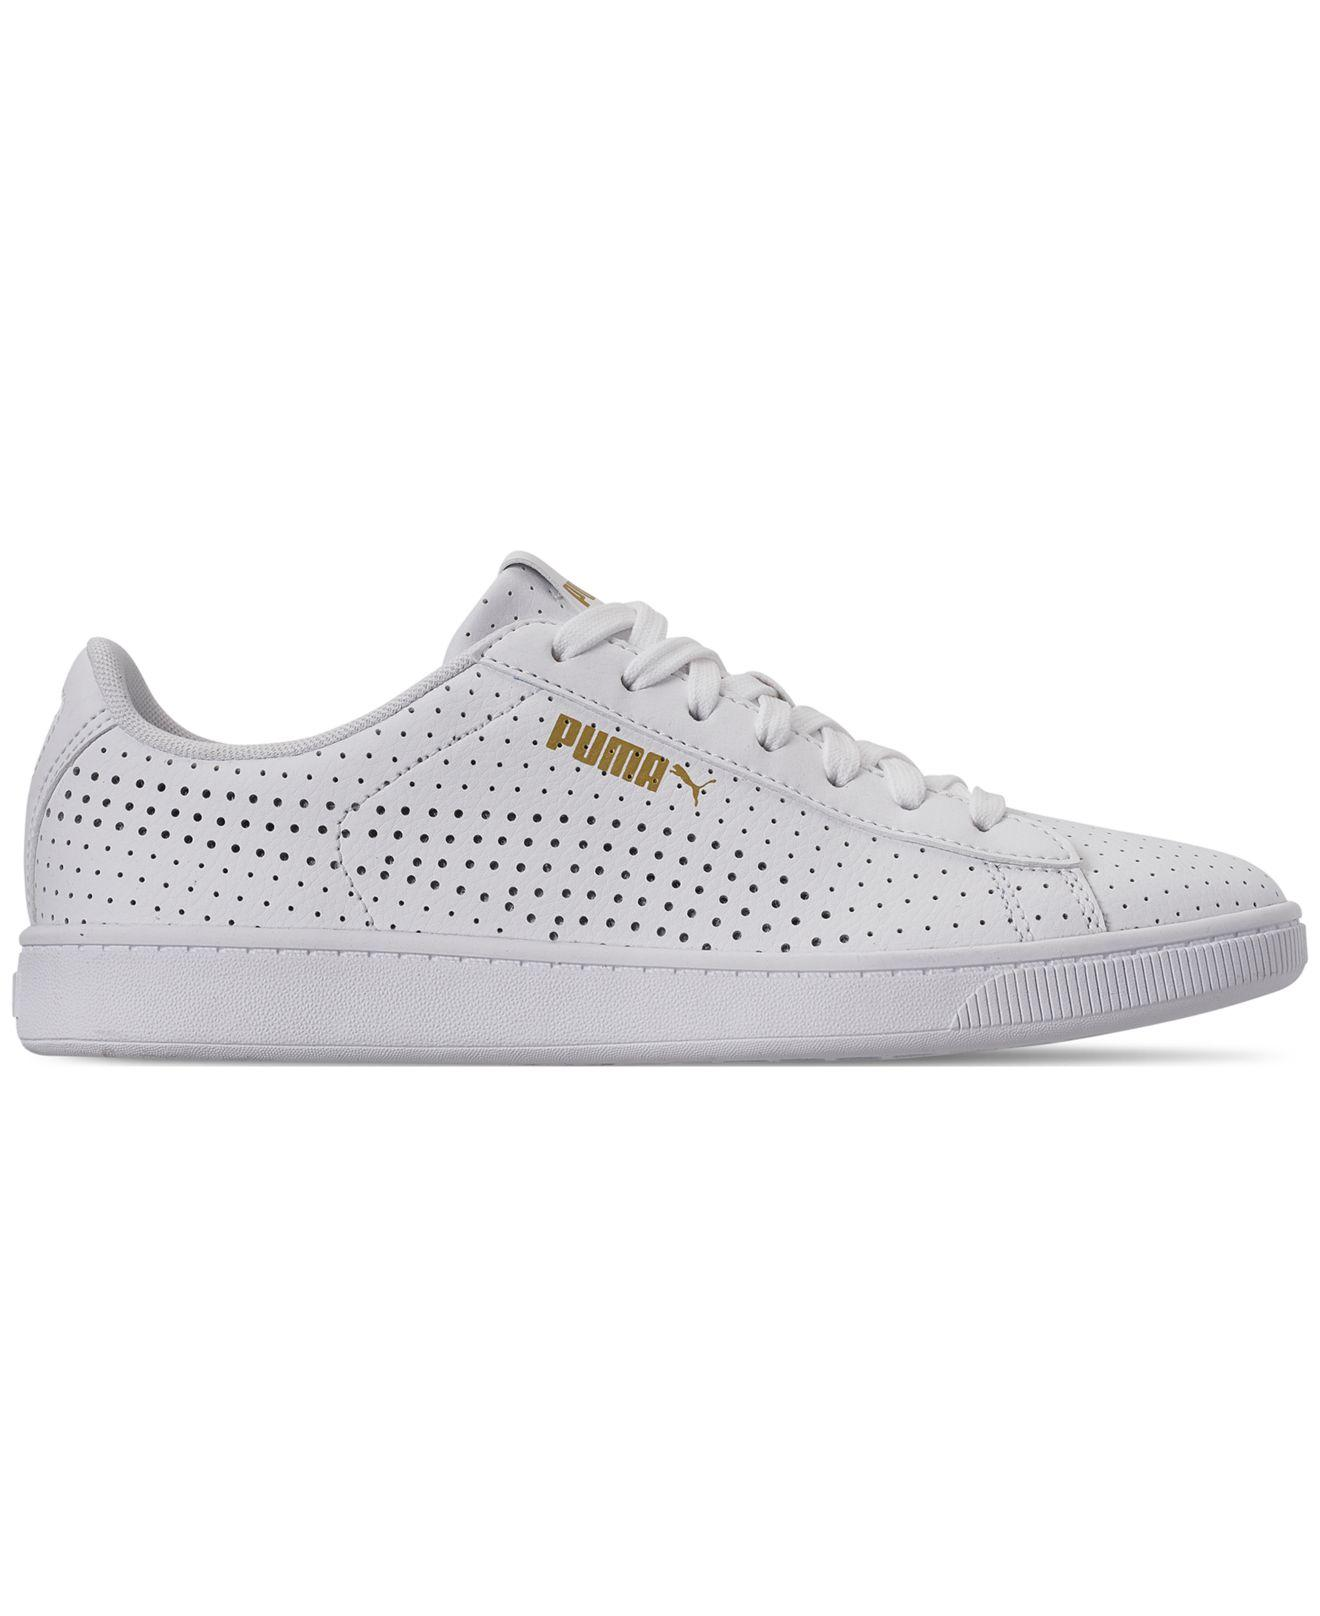 Lyst - PUMA Vikky Perf V2 Casual Sneakers From Finish Line in White 1ba16d0be